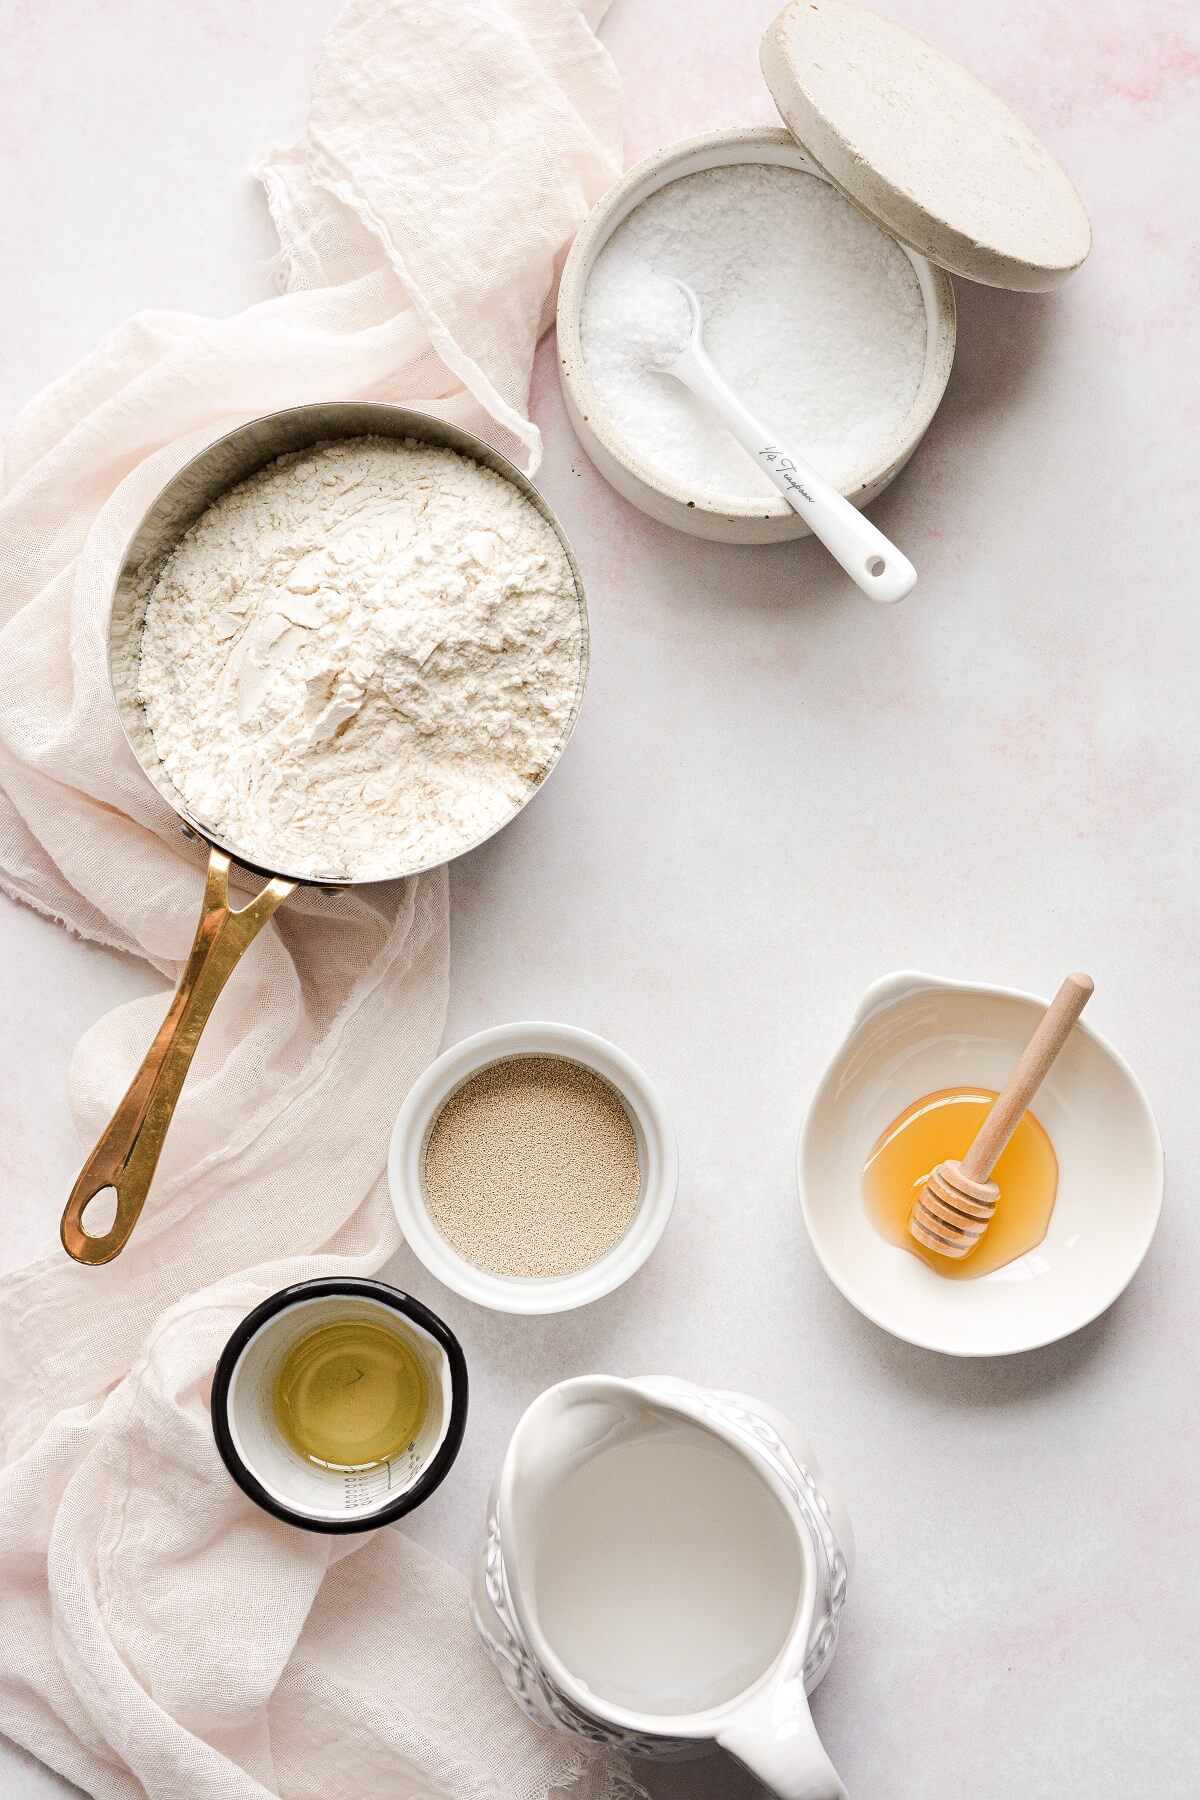 Ingredients for homemade pizza dough.